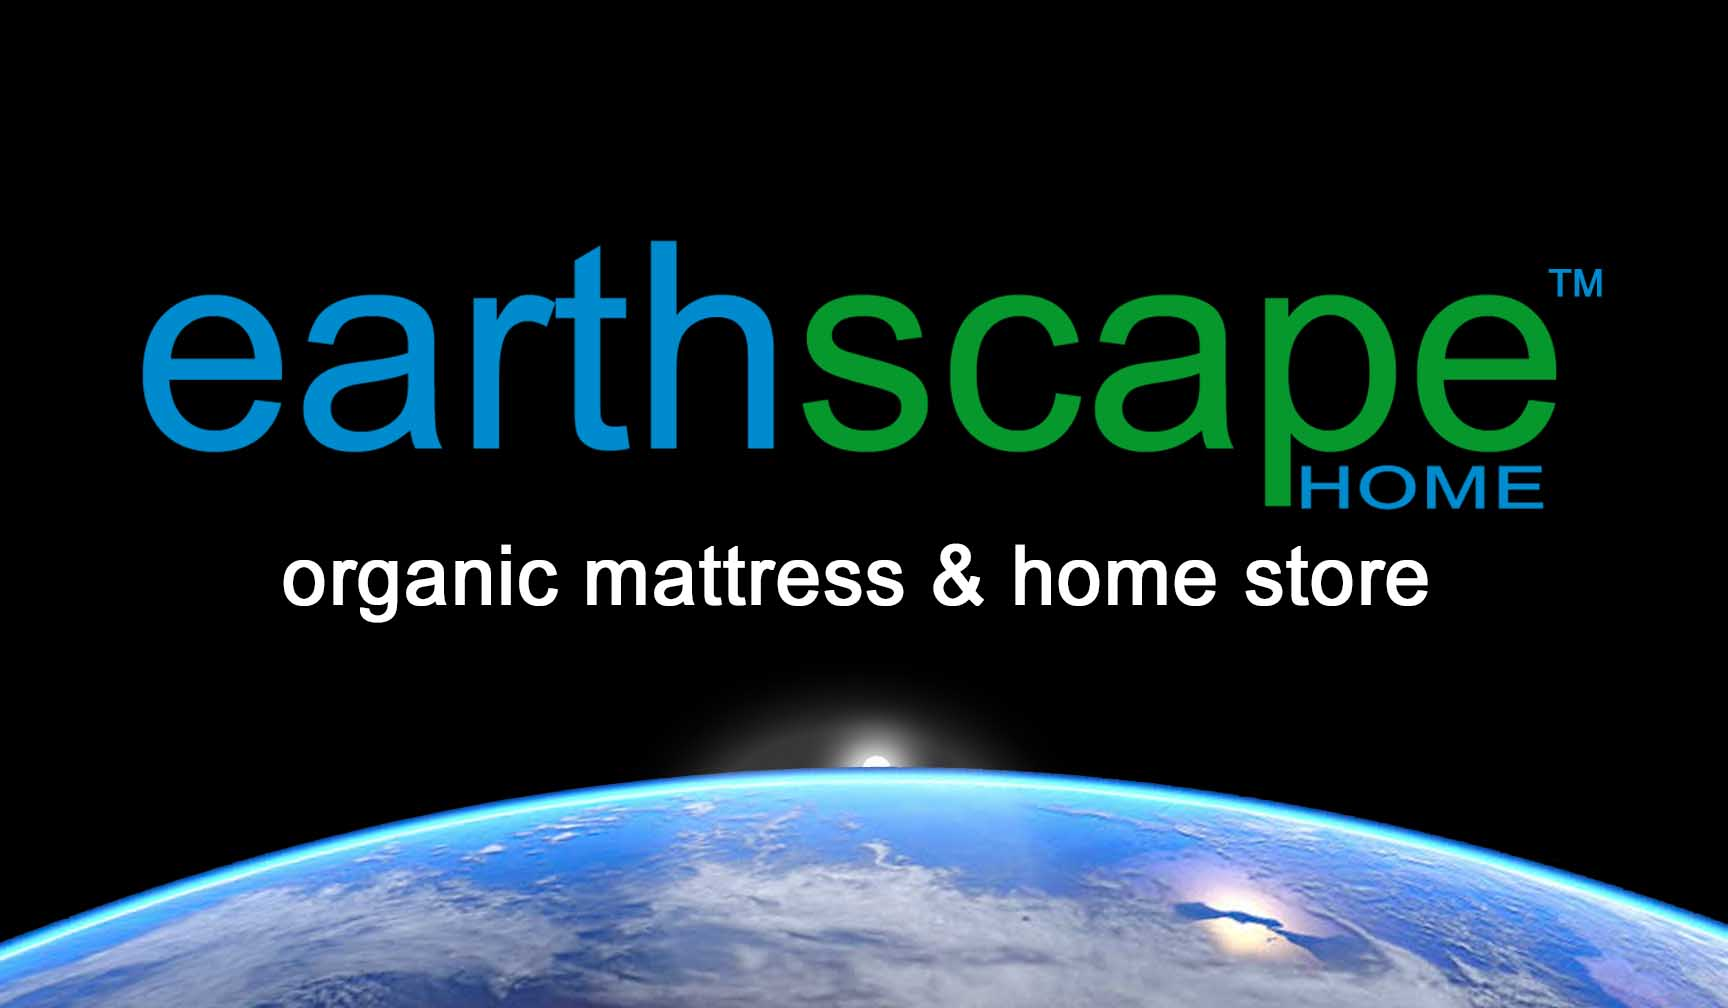 EarthscapeHome Organic Mattress & Home Store | Pleasant Ridge, MI